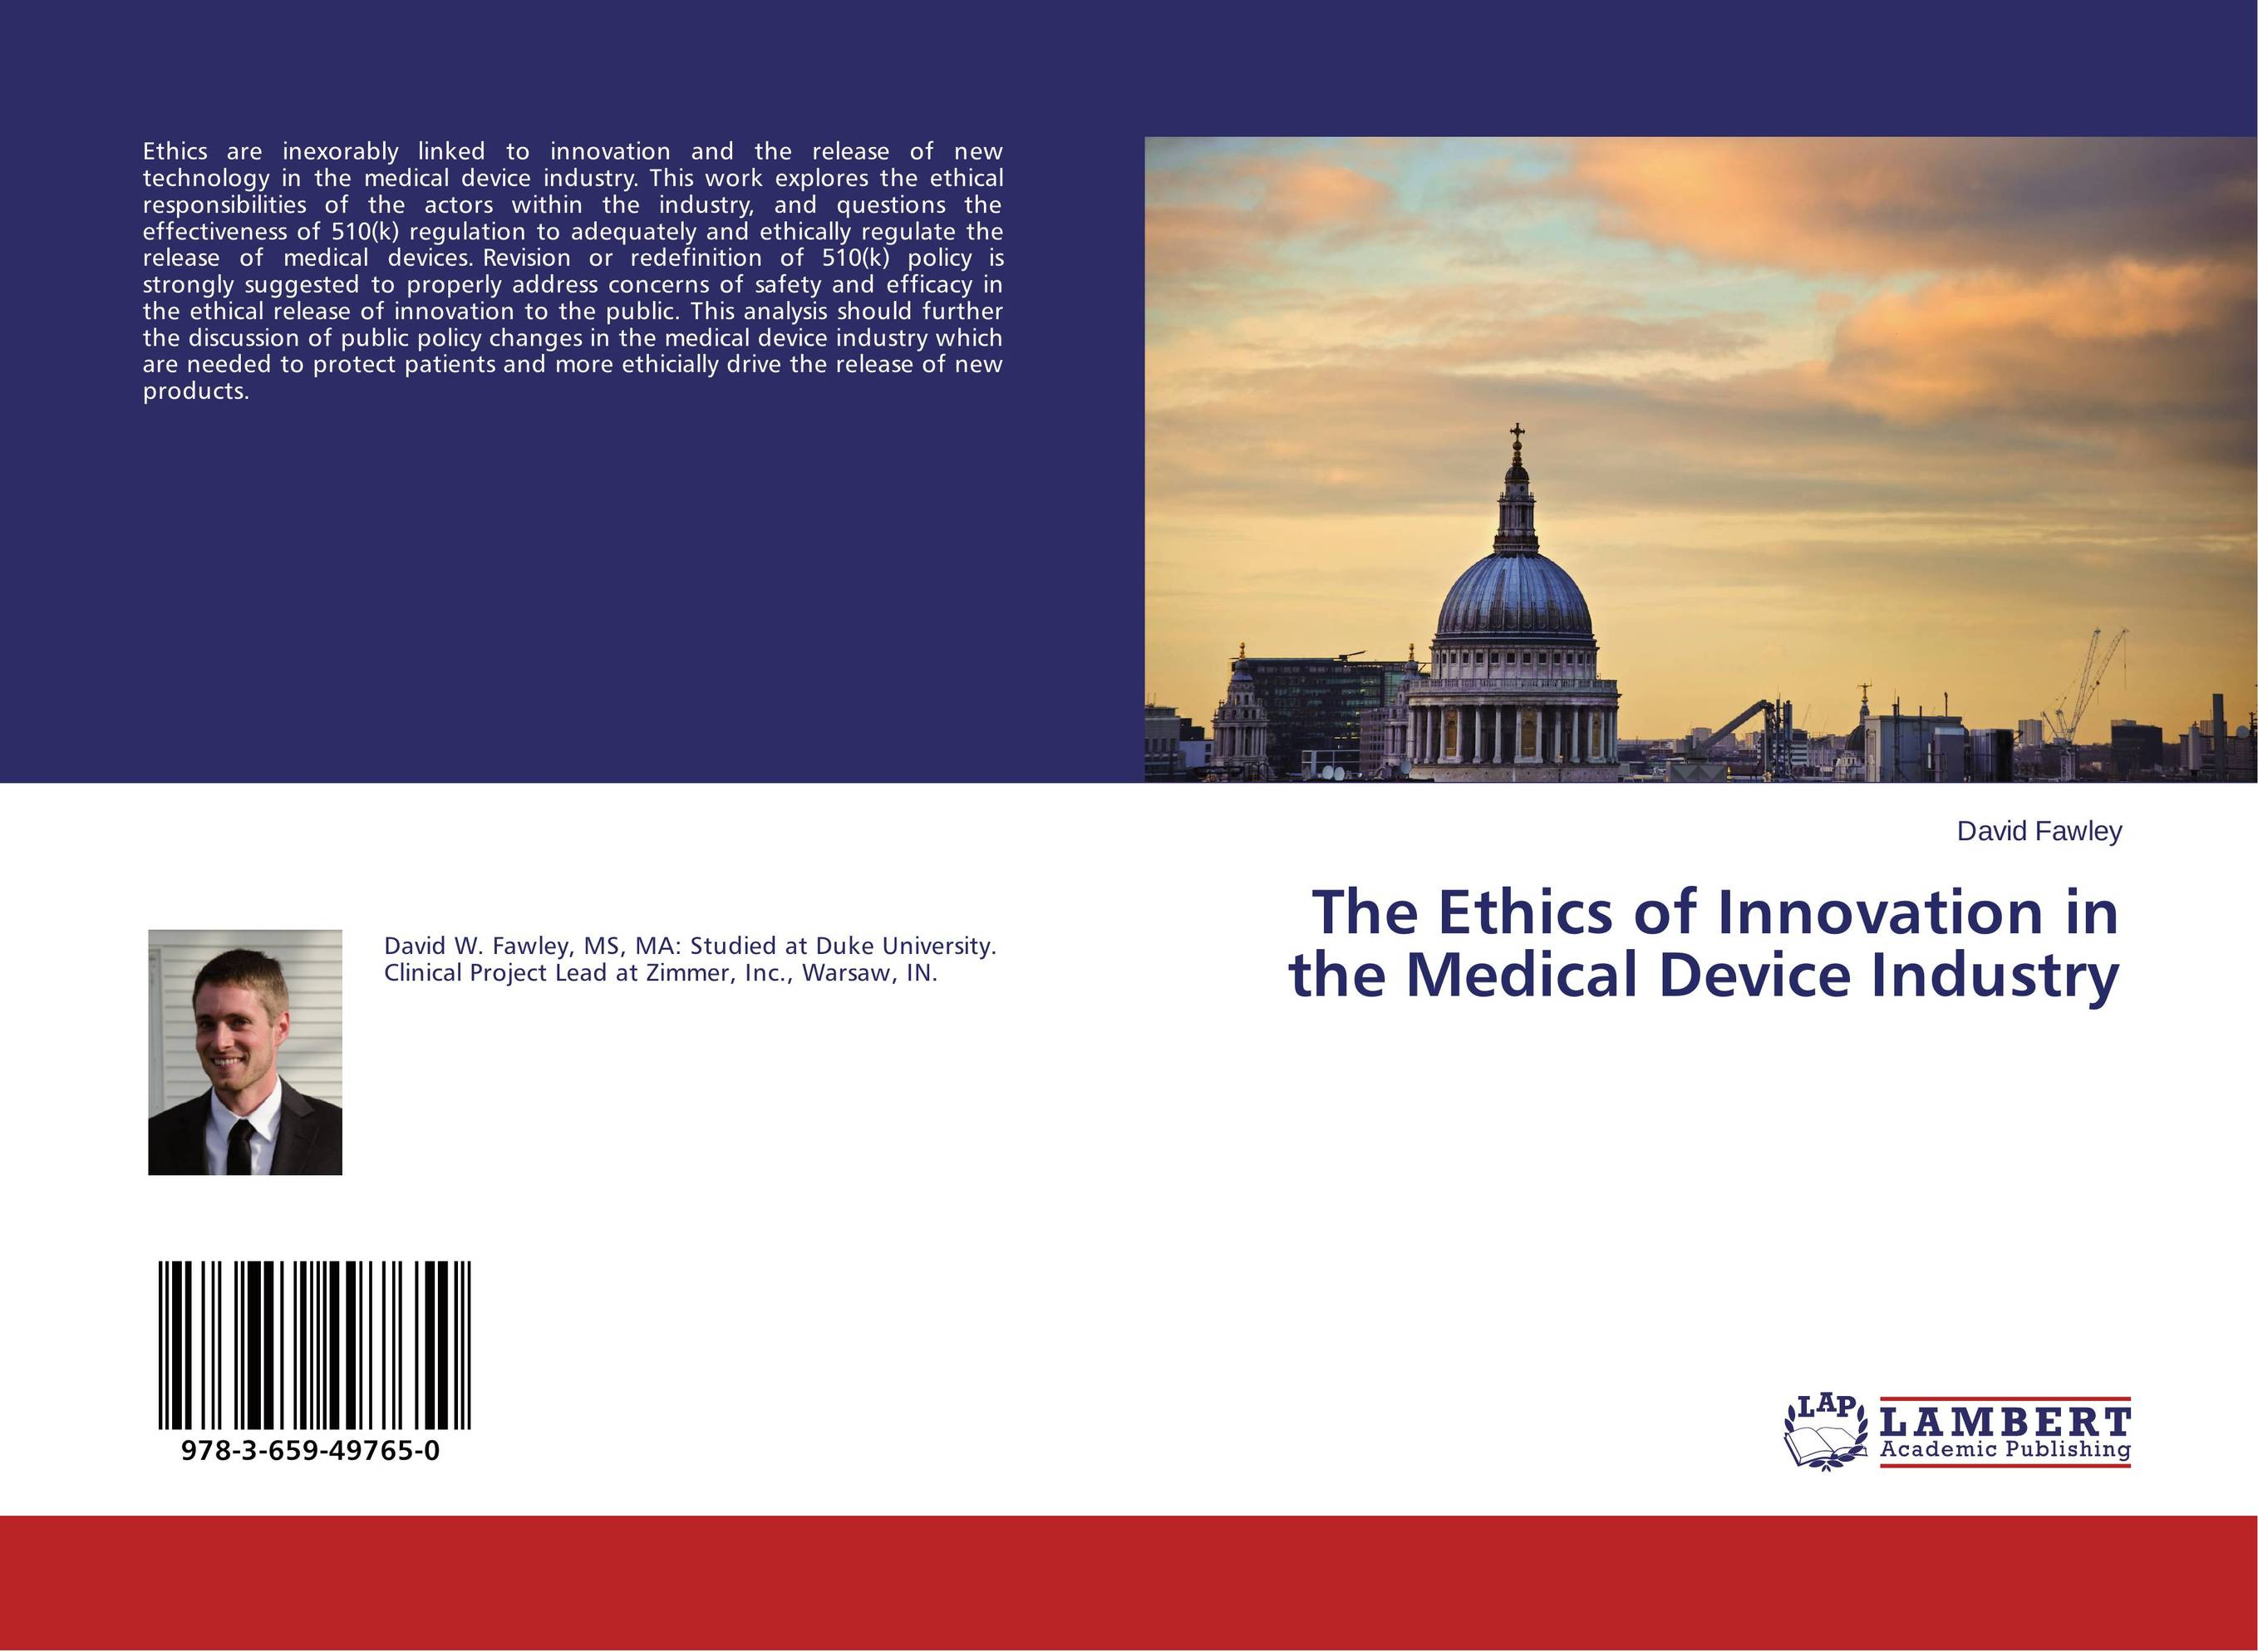 The Ethics of Innovation in the Medical Device Industry the application of global ethics to solve local improprieties